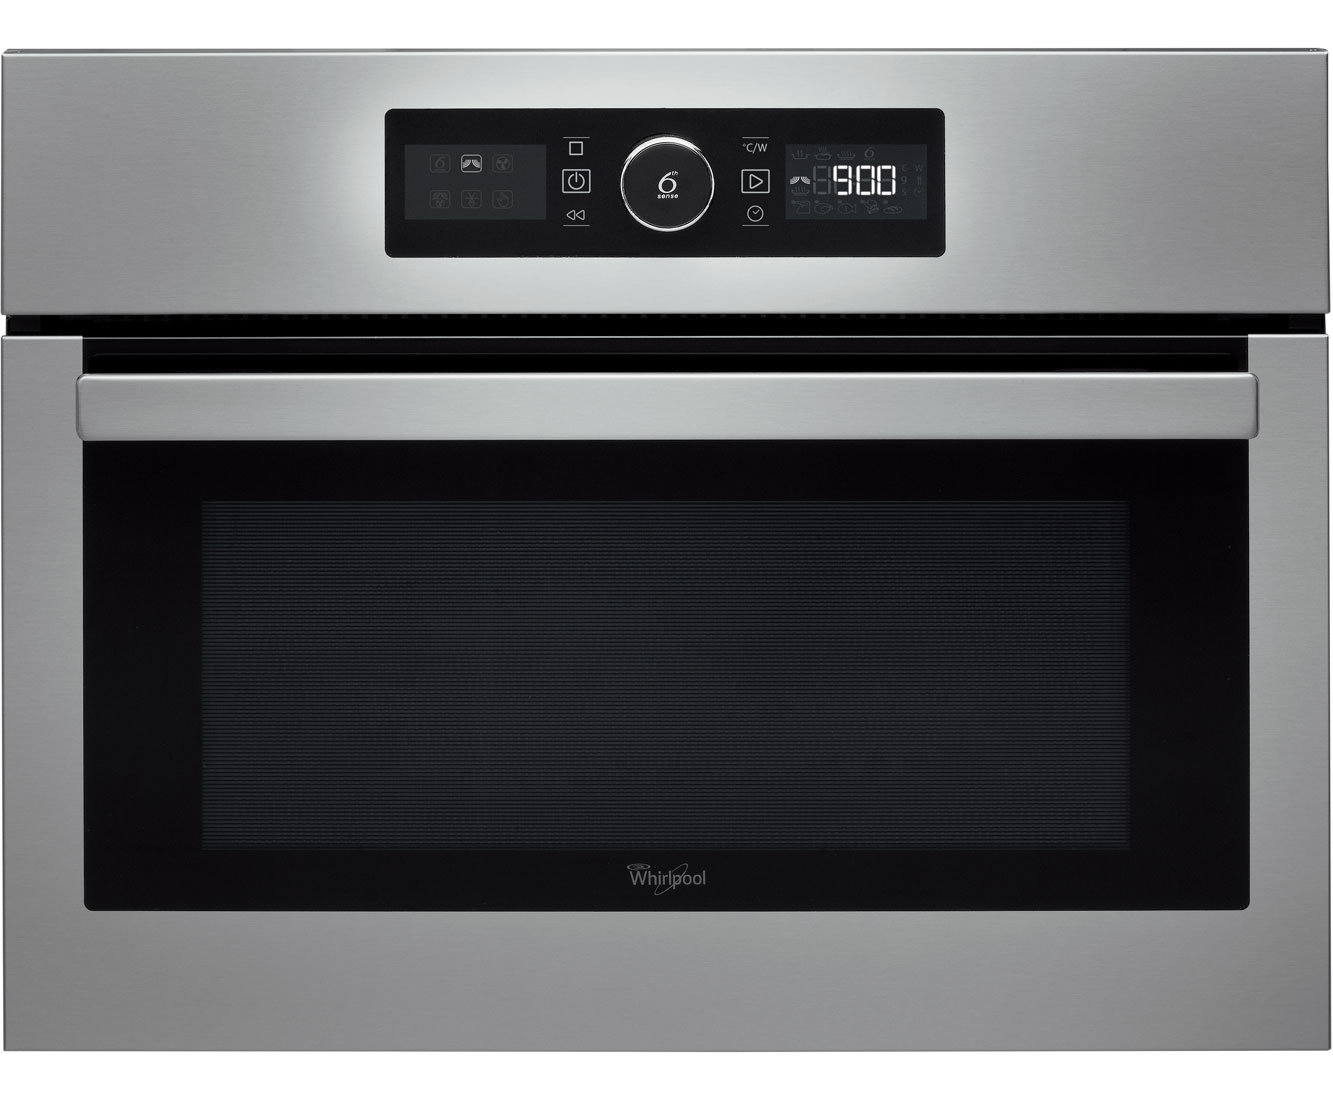 Whirlpool AMW505IX Integrated Microwave Oven in Inox